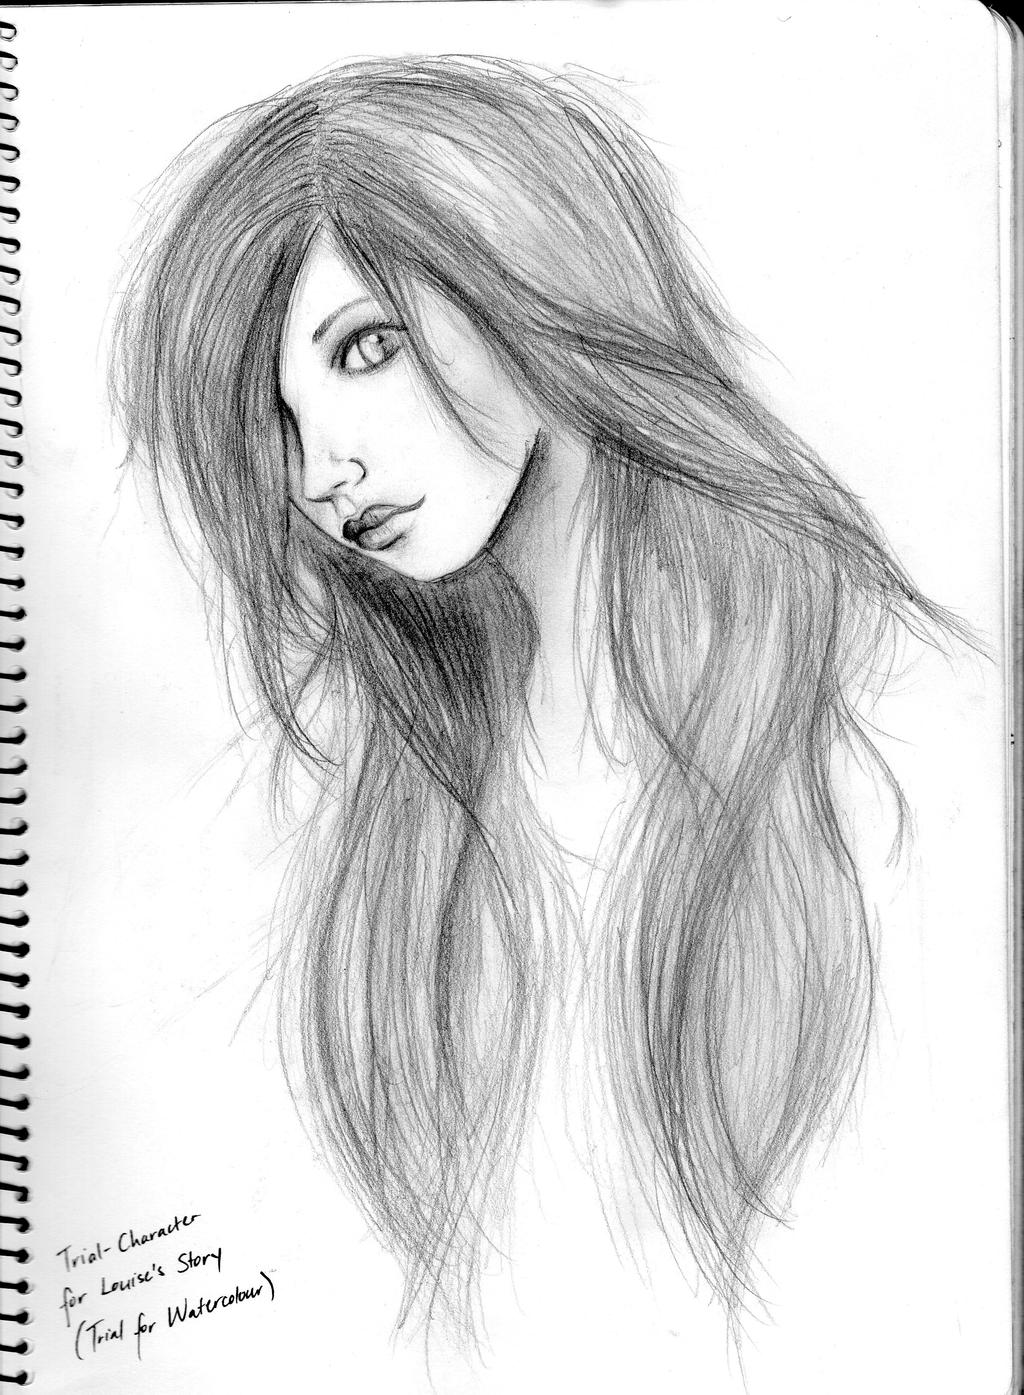 Easy Pencil Sketches Tumblr Cute And Simple Search Results ...